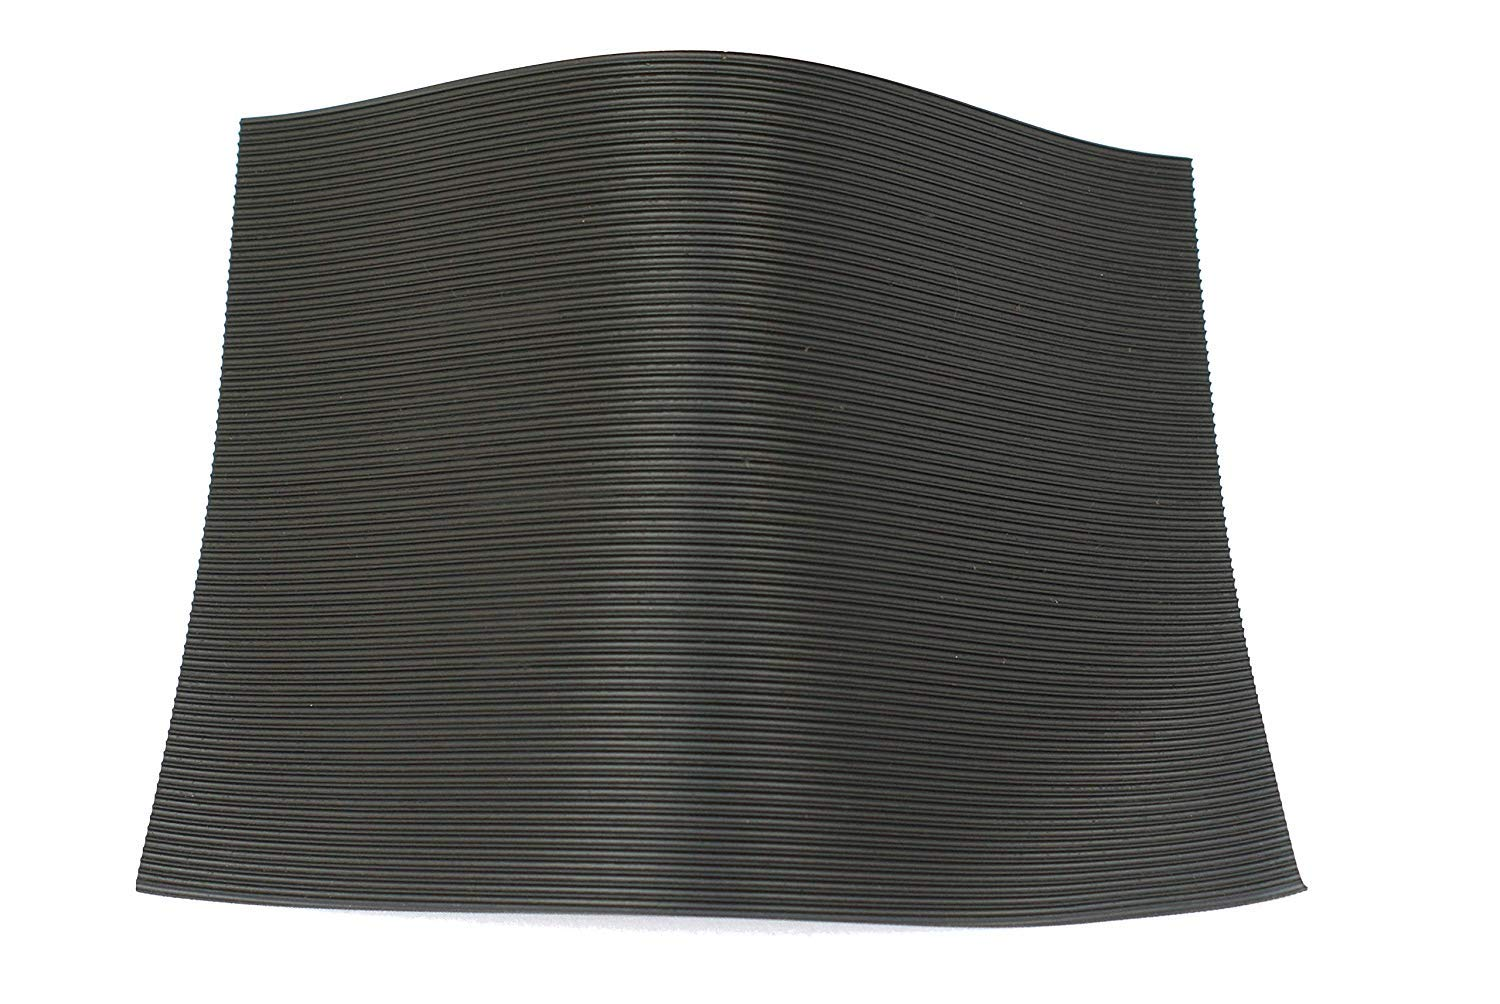 Size A2 Fine Fluted Black Ribbed Rubber Matting 3mm Thick 594mm x 420mm